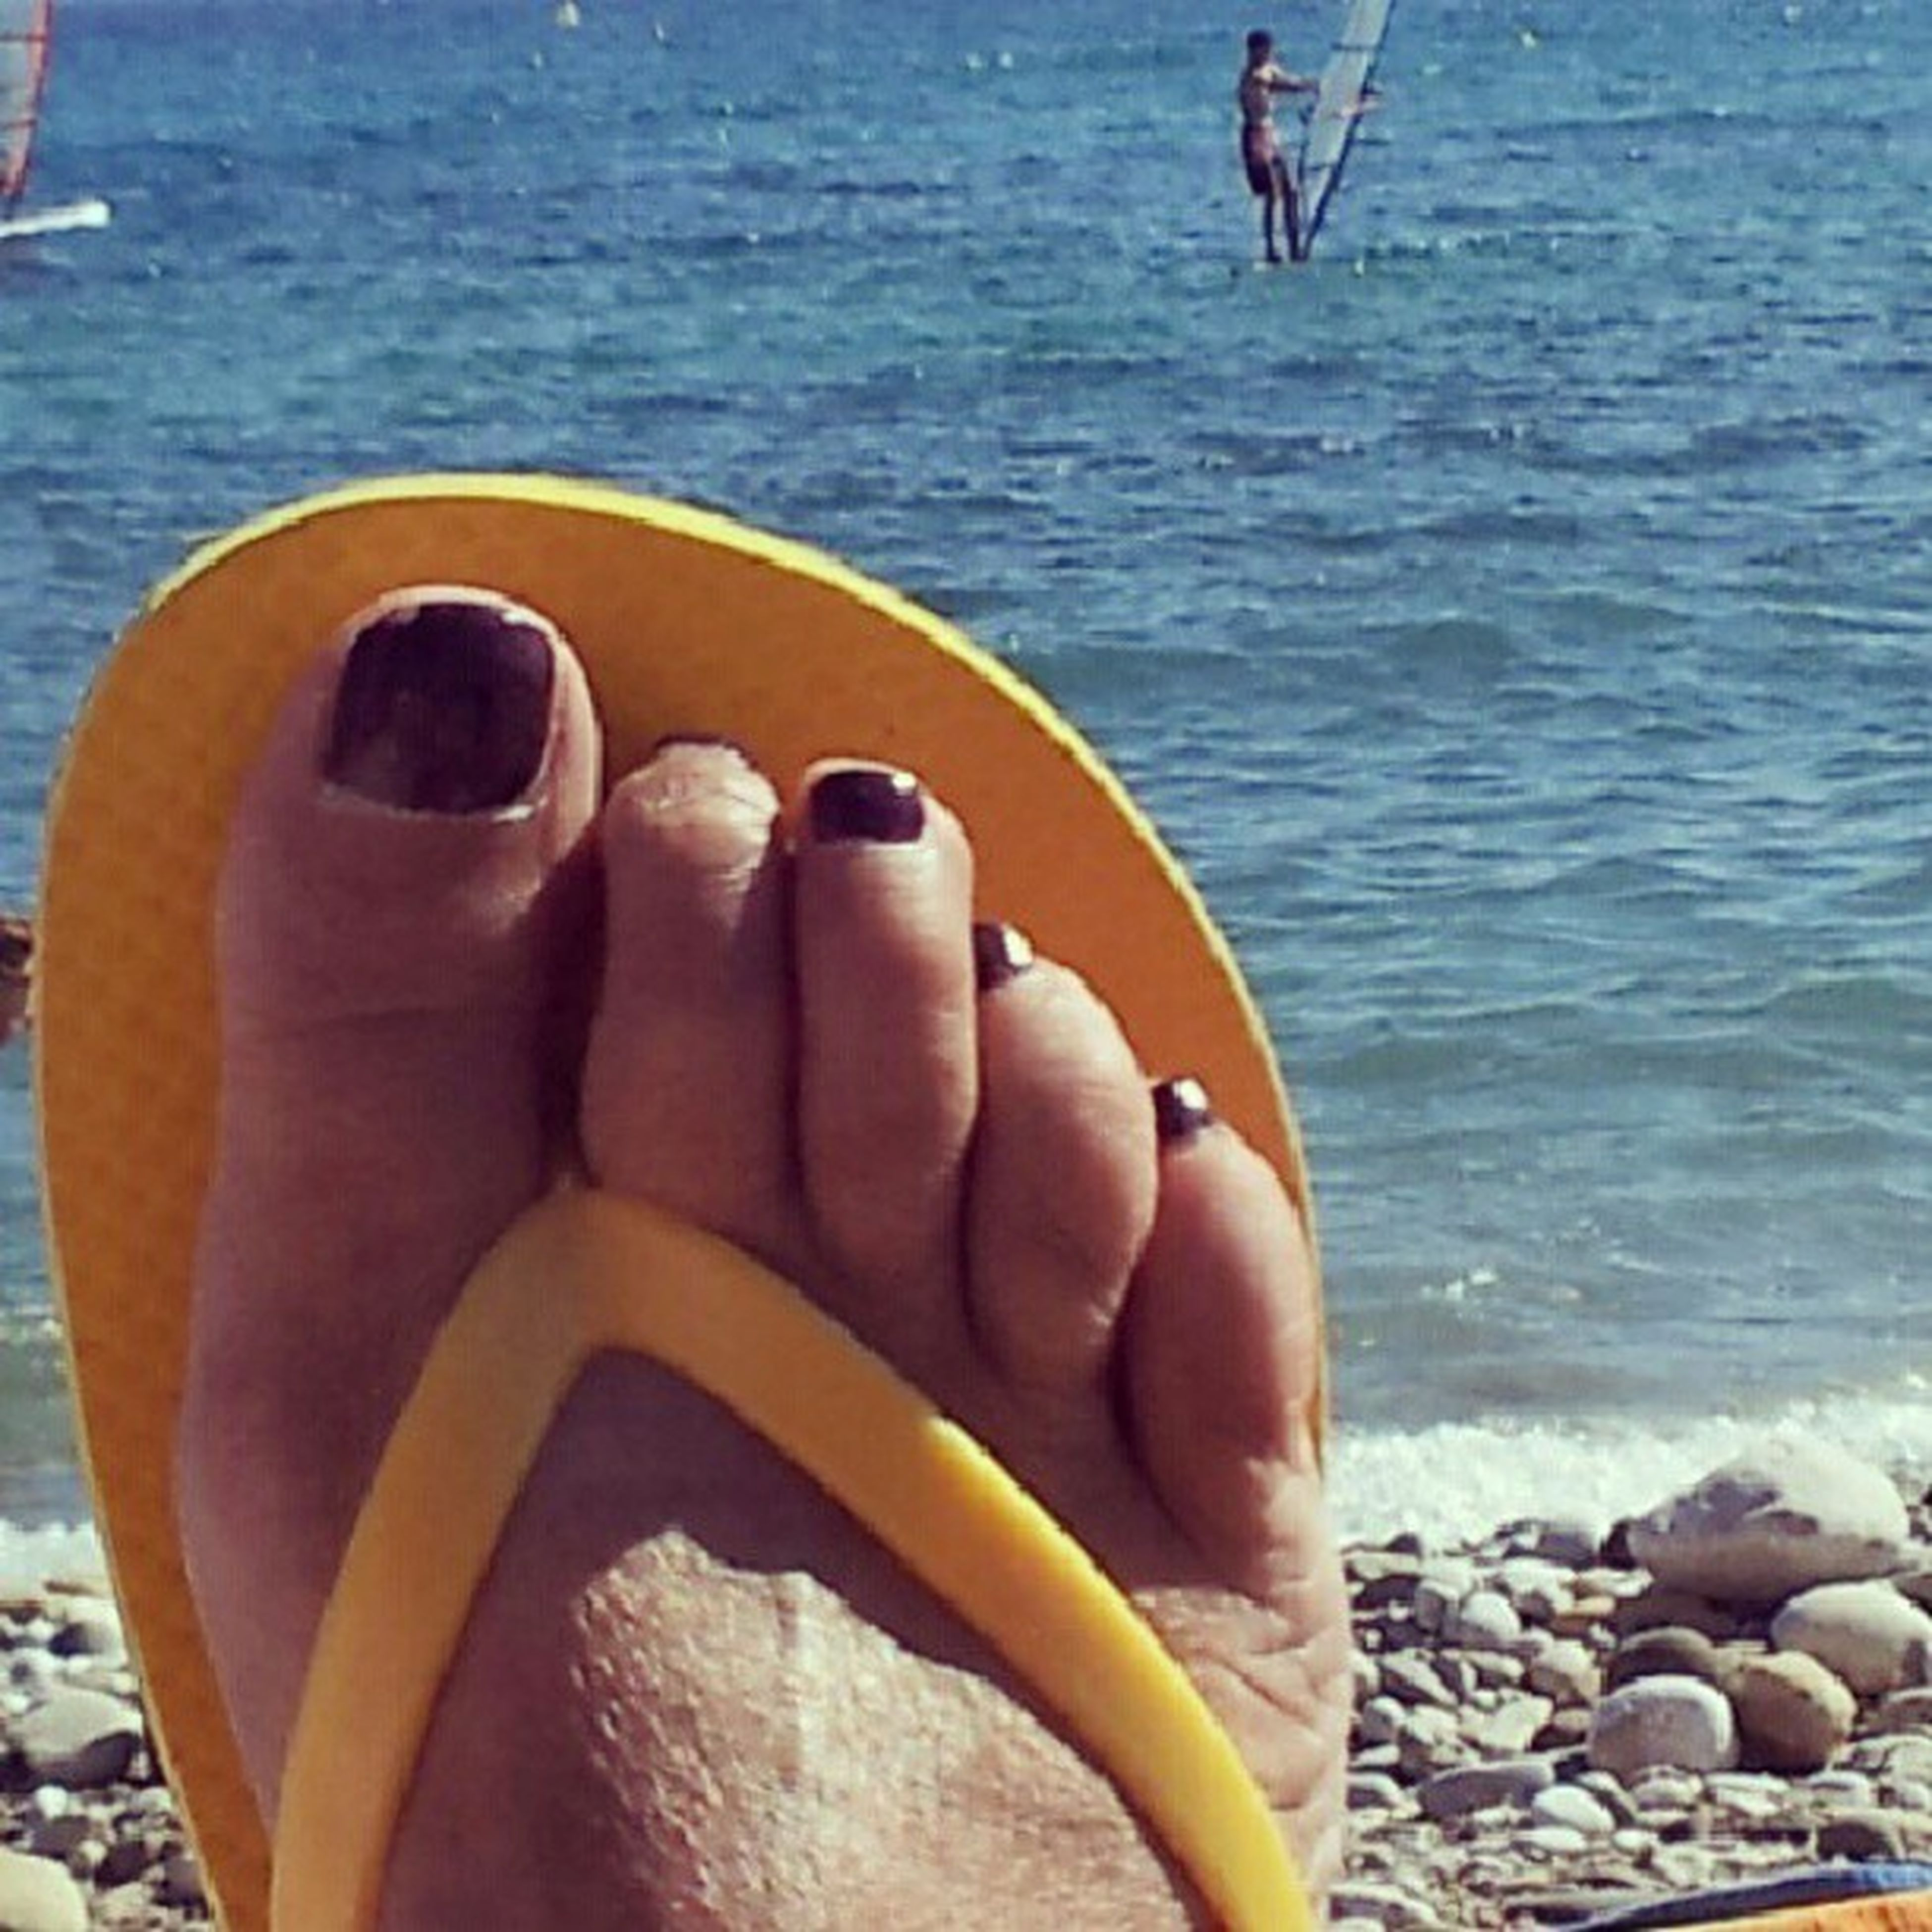 water, person, low section, beach, sea, lifestyles, leisure activity, vacations, human foot, personal perspective, shore, relaxation, part of, barefoot, men